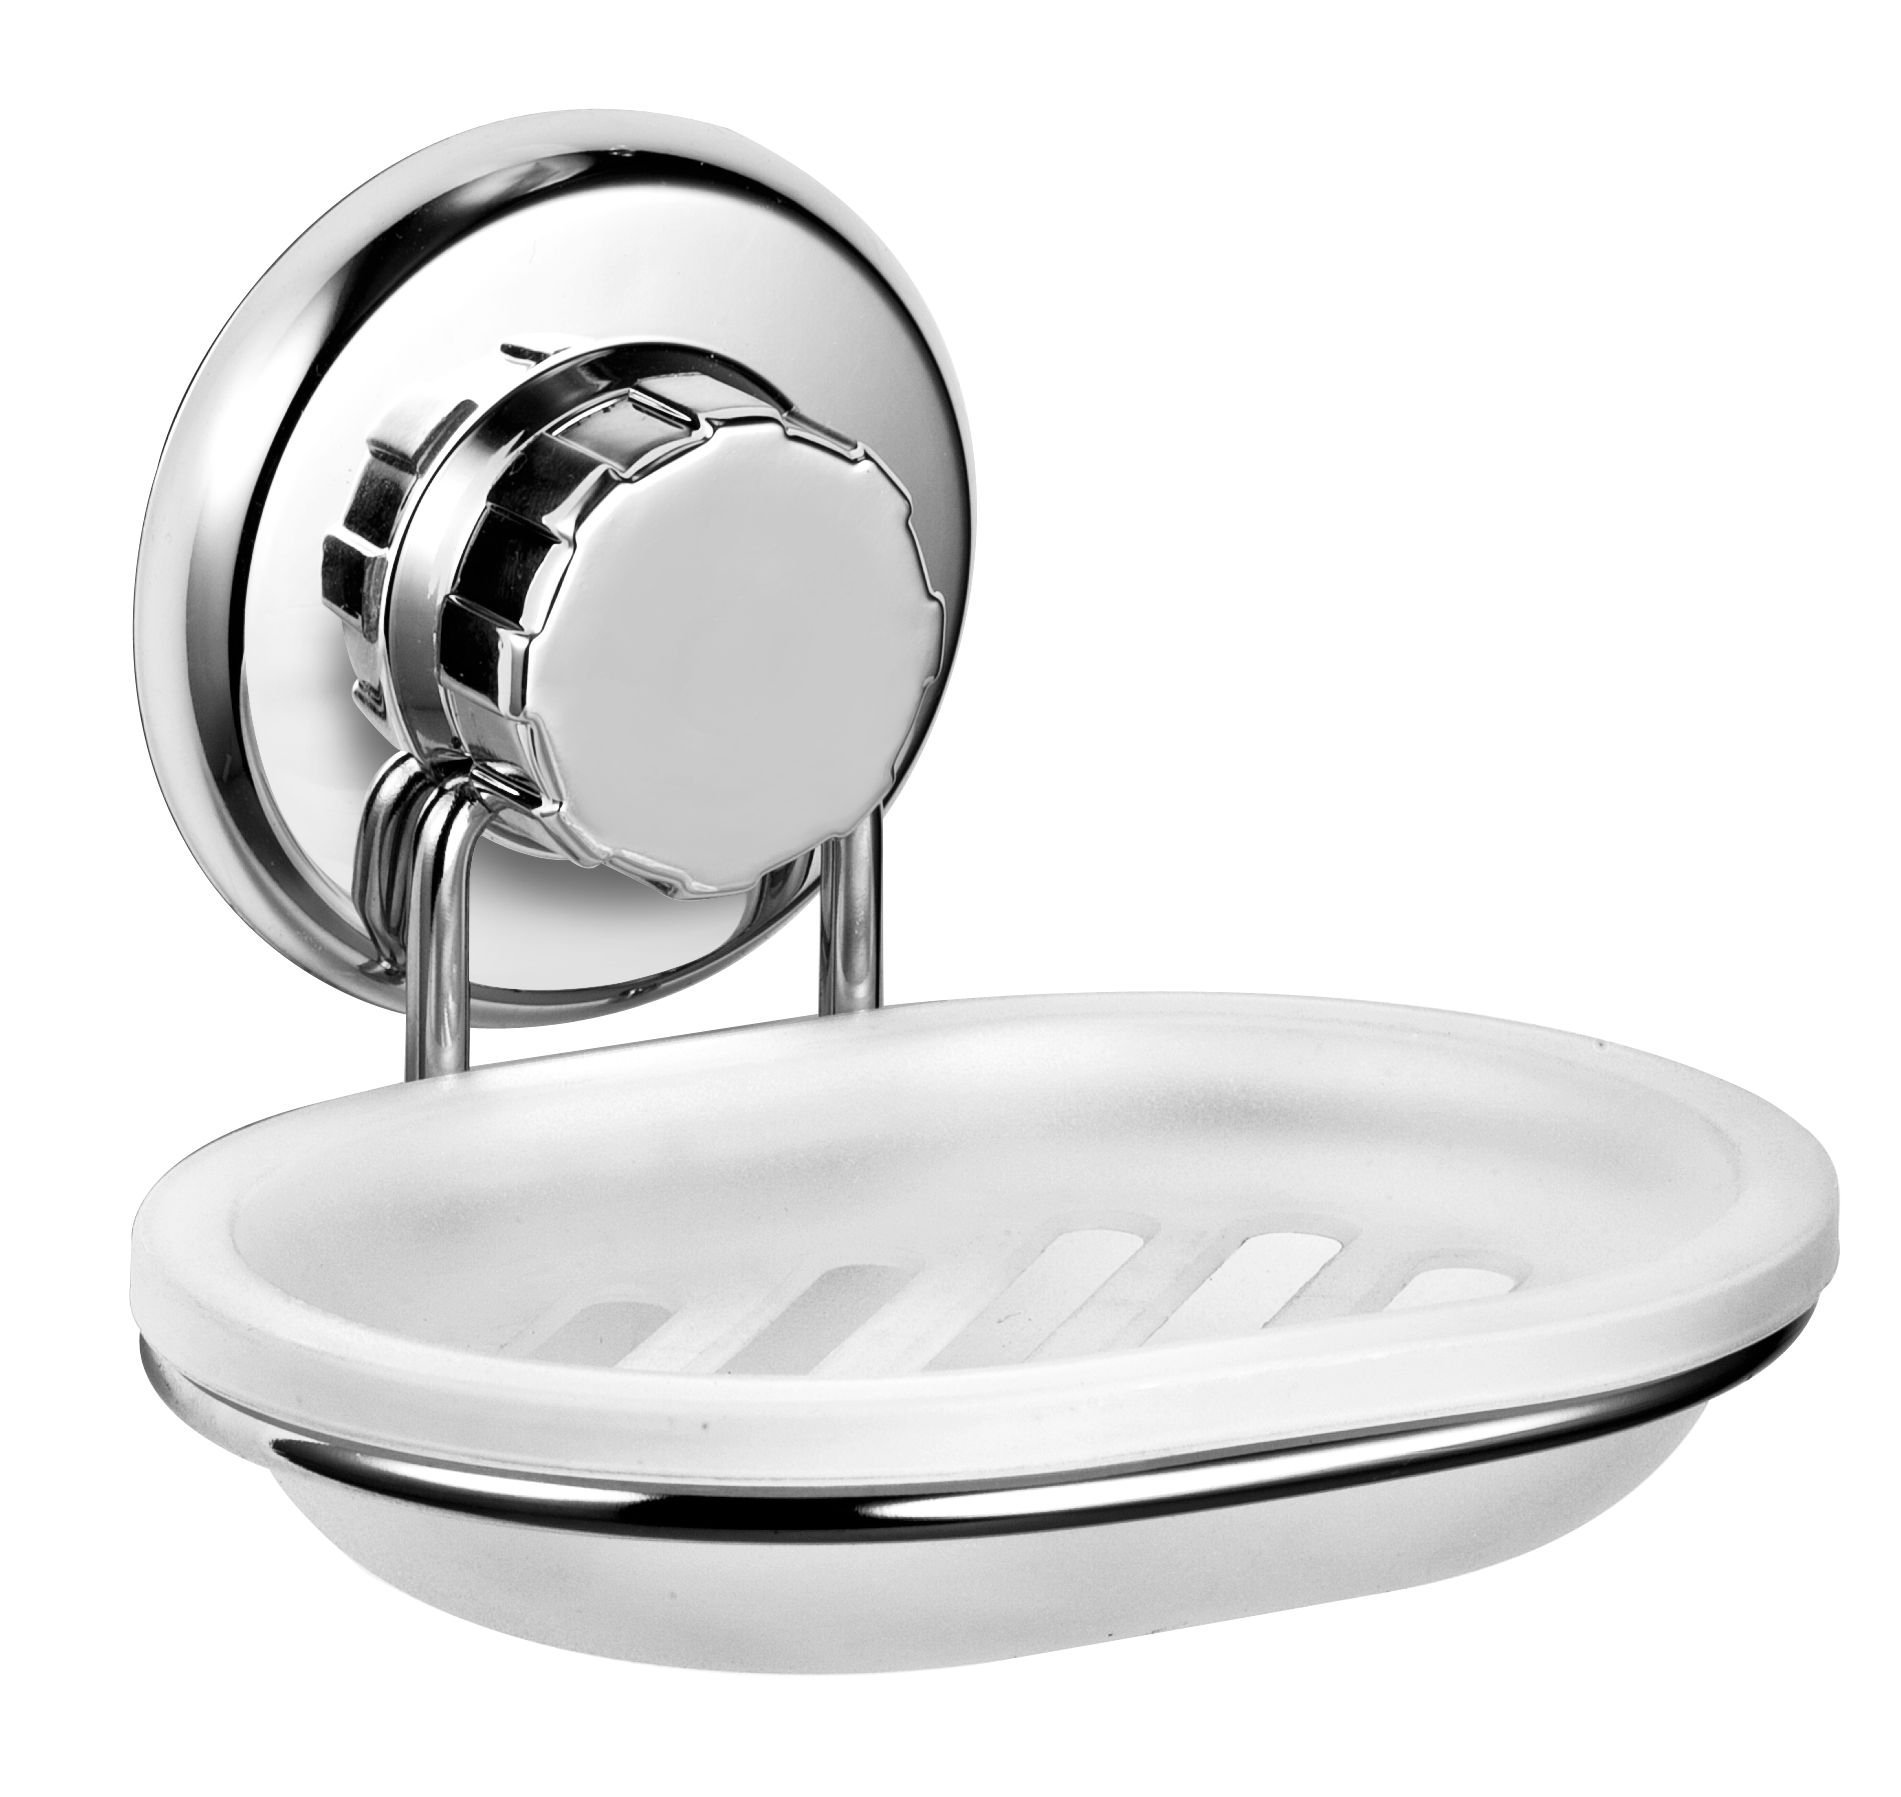 HASKO accessories Vacuum Suction Cup Soap Dish Holder Strong Stainless Steel Sponge Holder for Bathroom & Kitchen - Soap Caddy Can be Mounted on Any Clean Flat Smooth Surface - (Chrome) by HASKO accessories